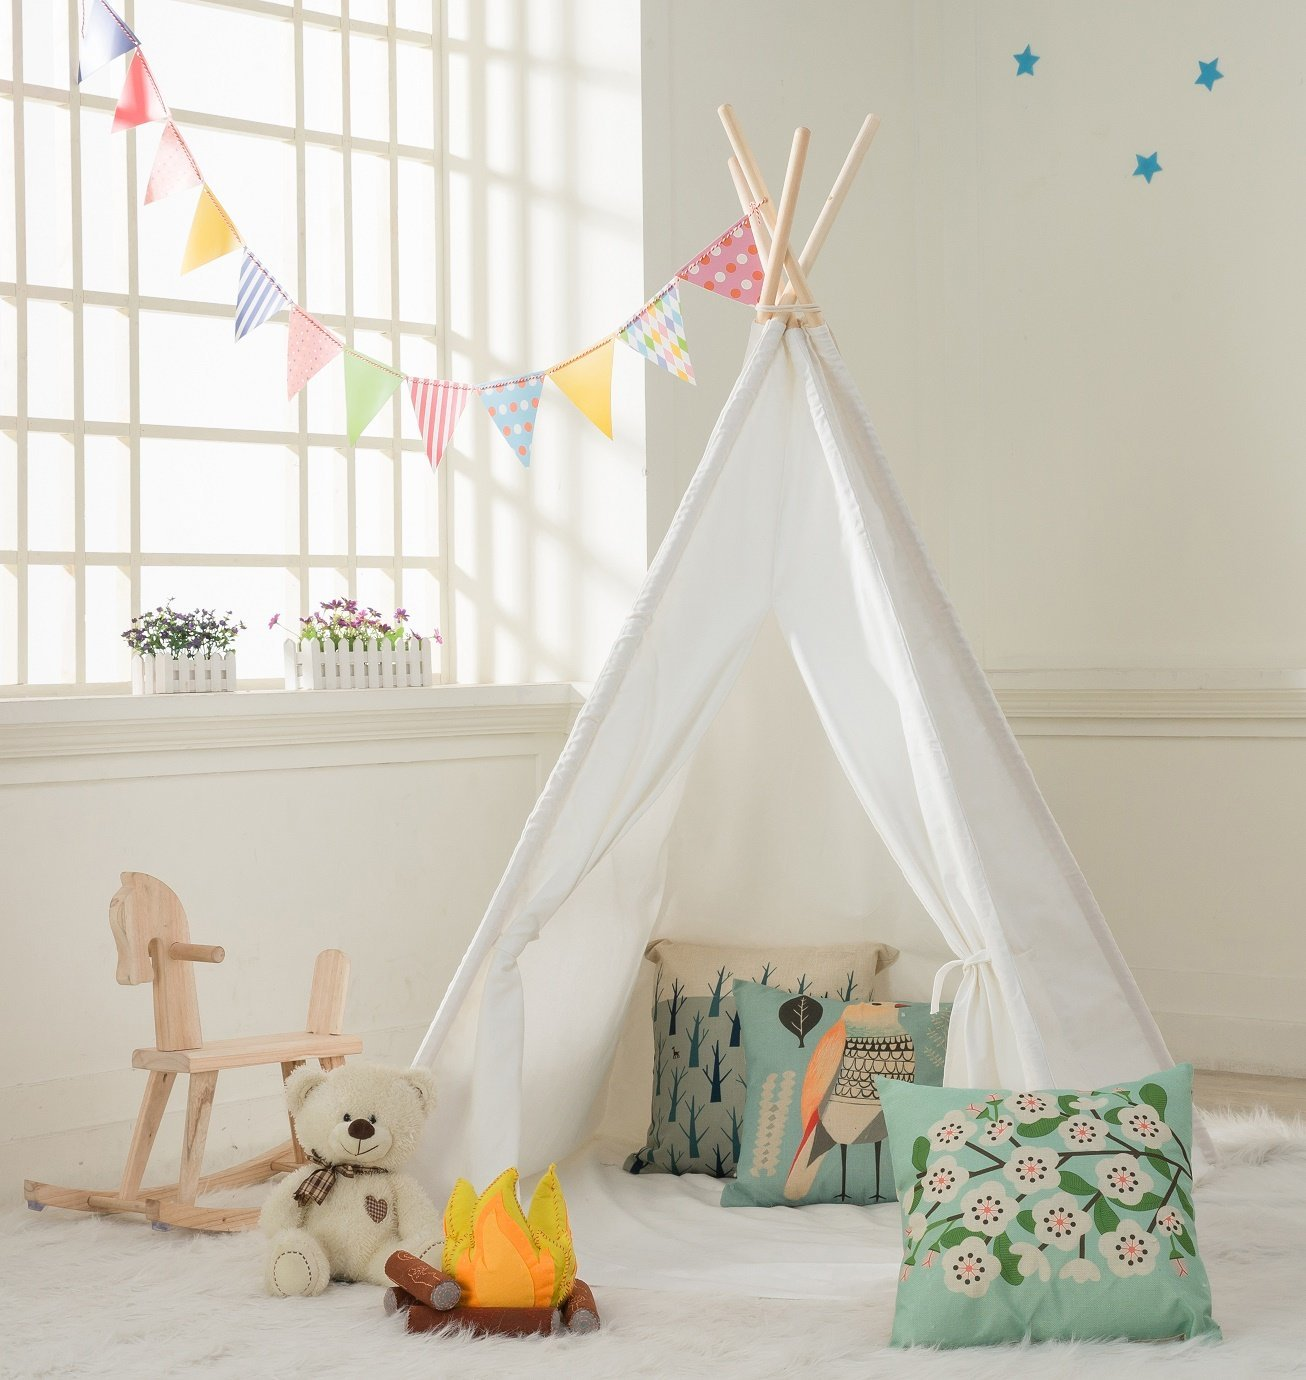 Kids Teepee Tent -100% Natural Canvas Children Tent with Mat : tent children - memphite.com